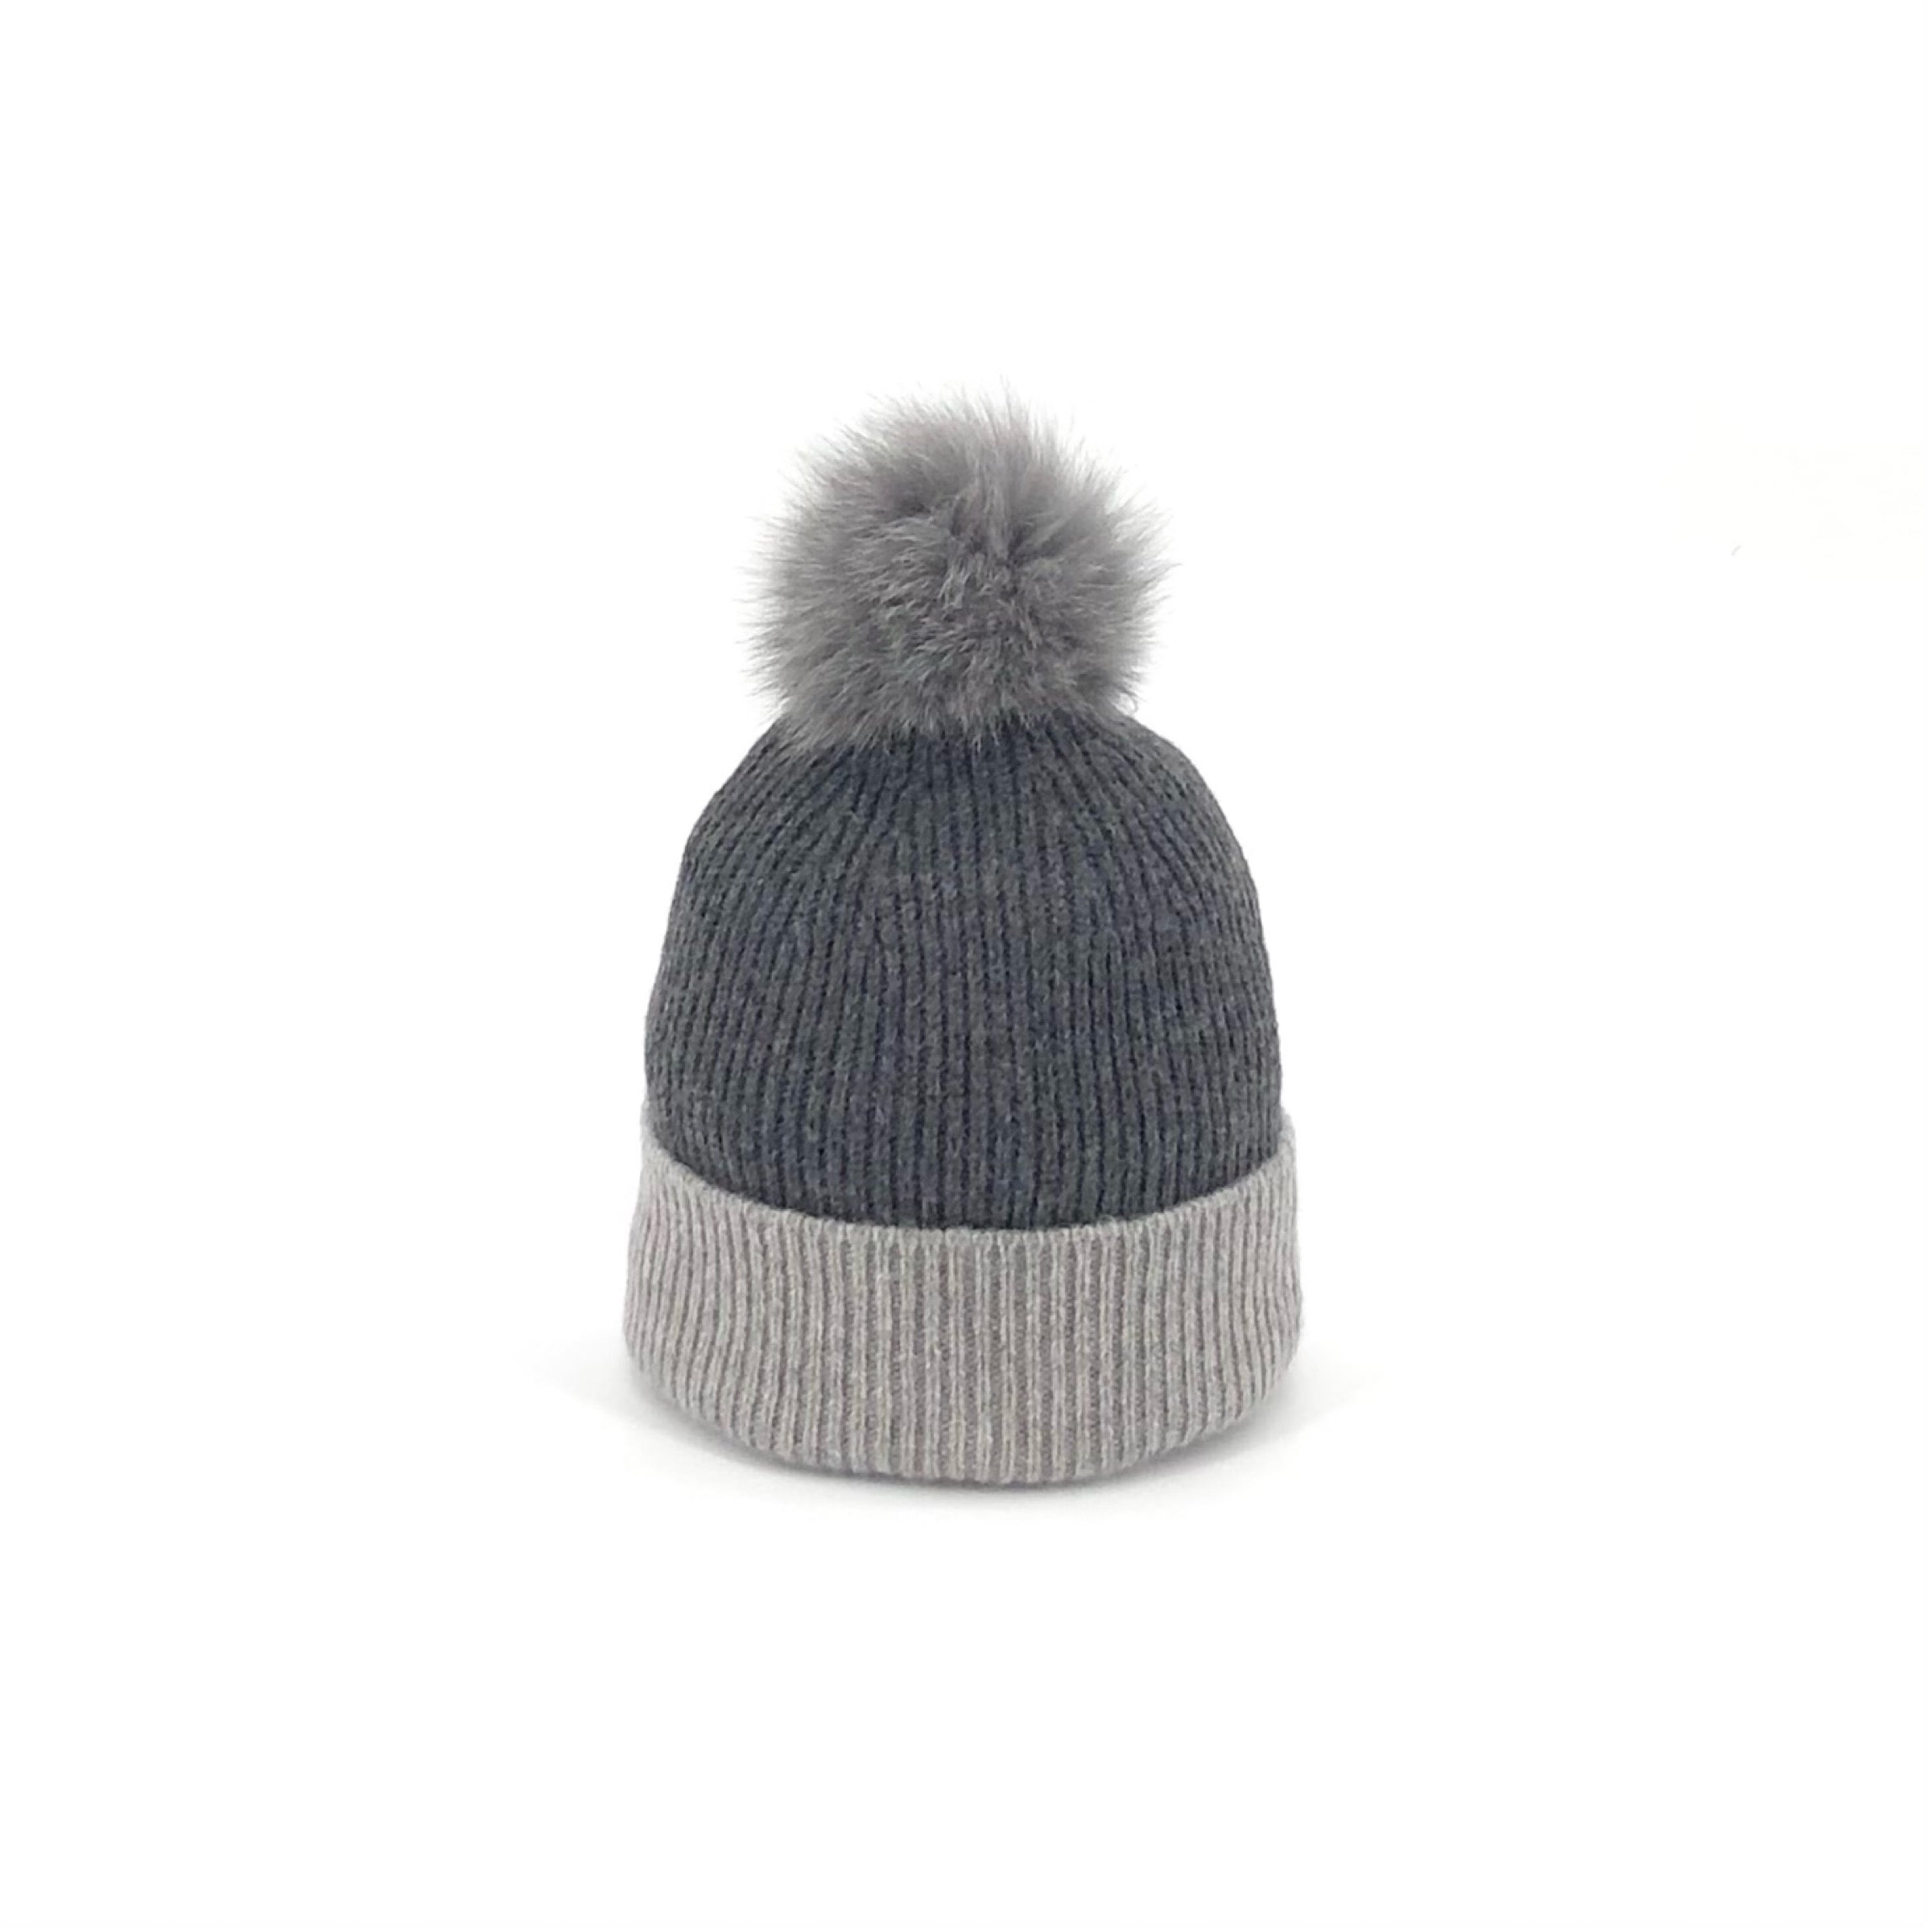 The Knitted Hat in Charcoal and Light Grey with Grey Fox Pom